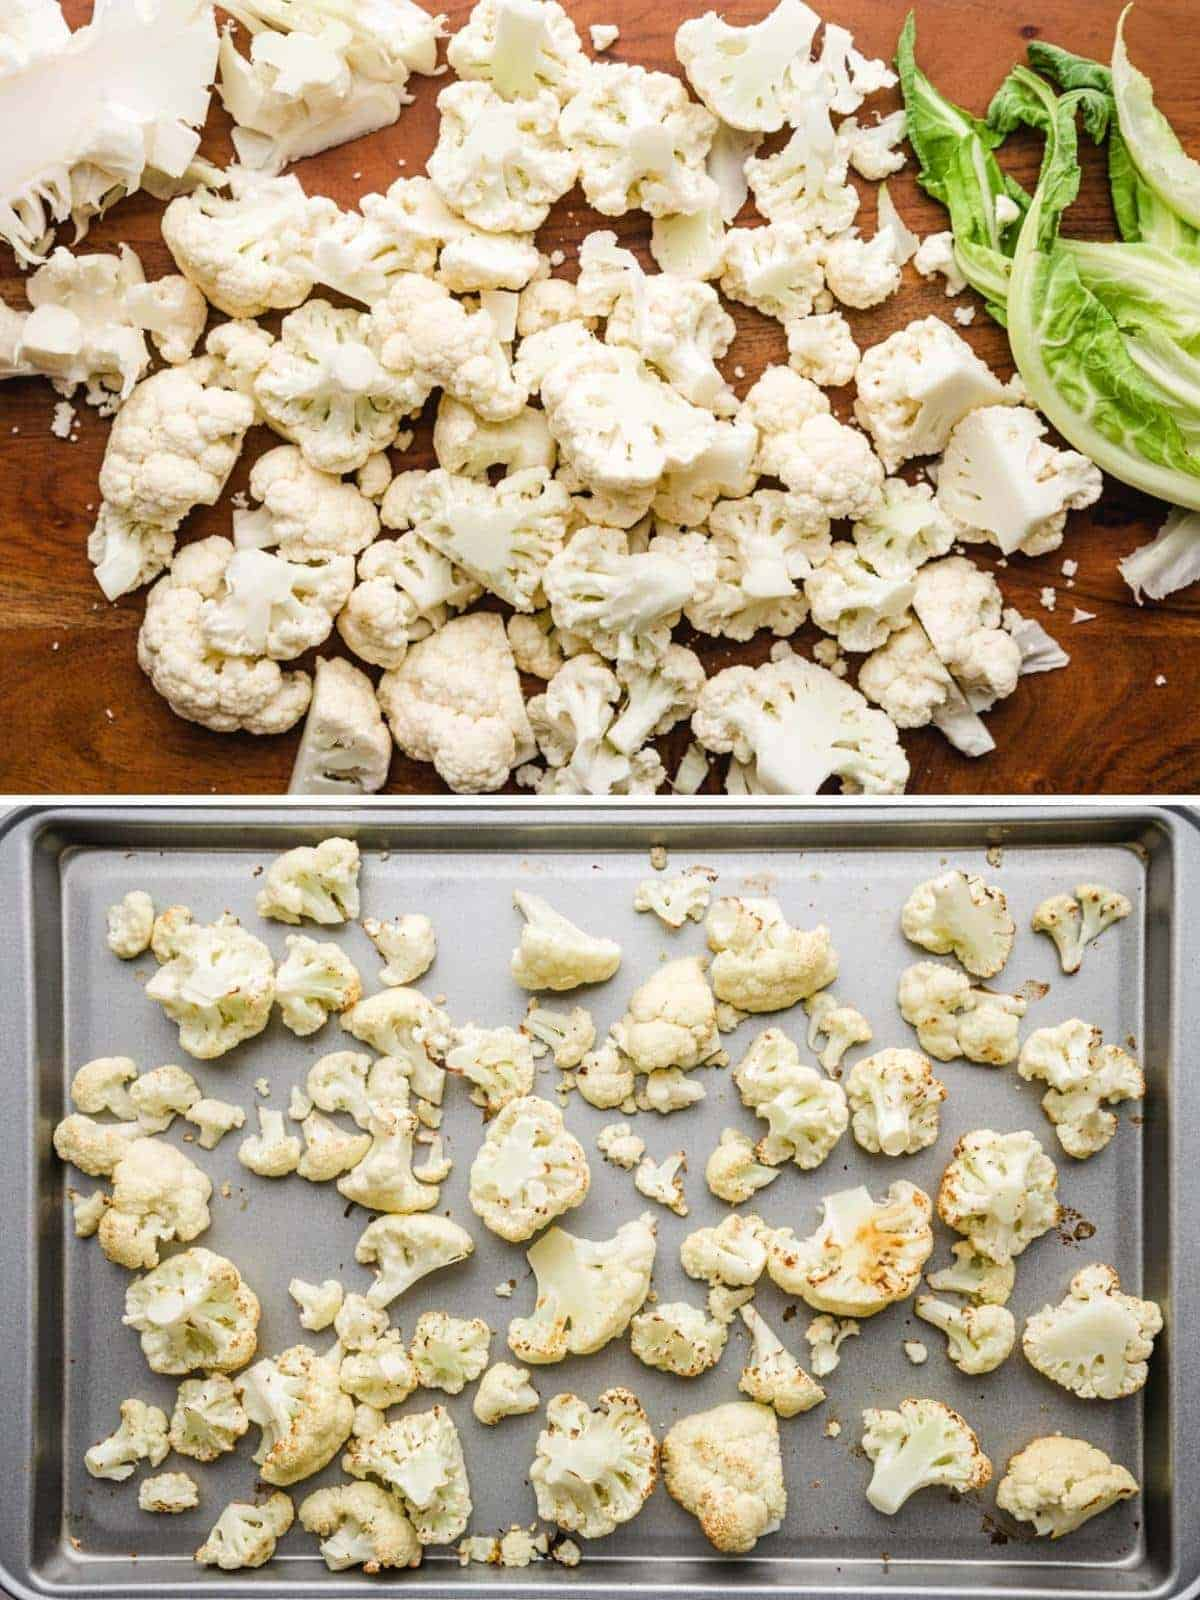 Prepping the cauliflower - steps